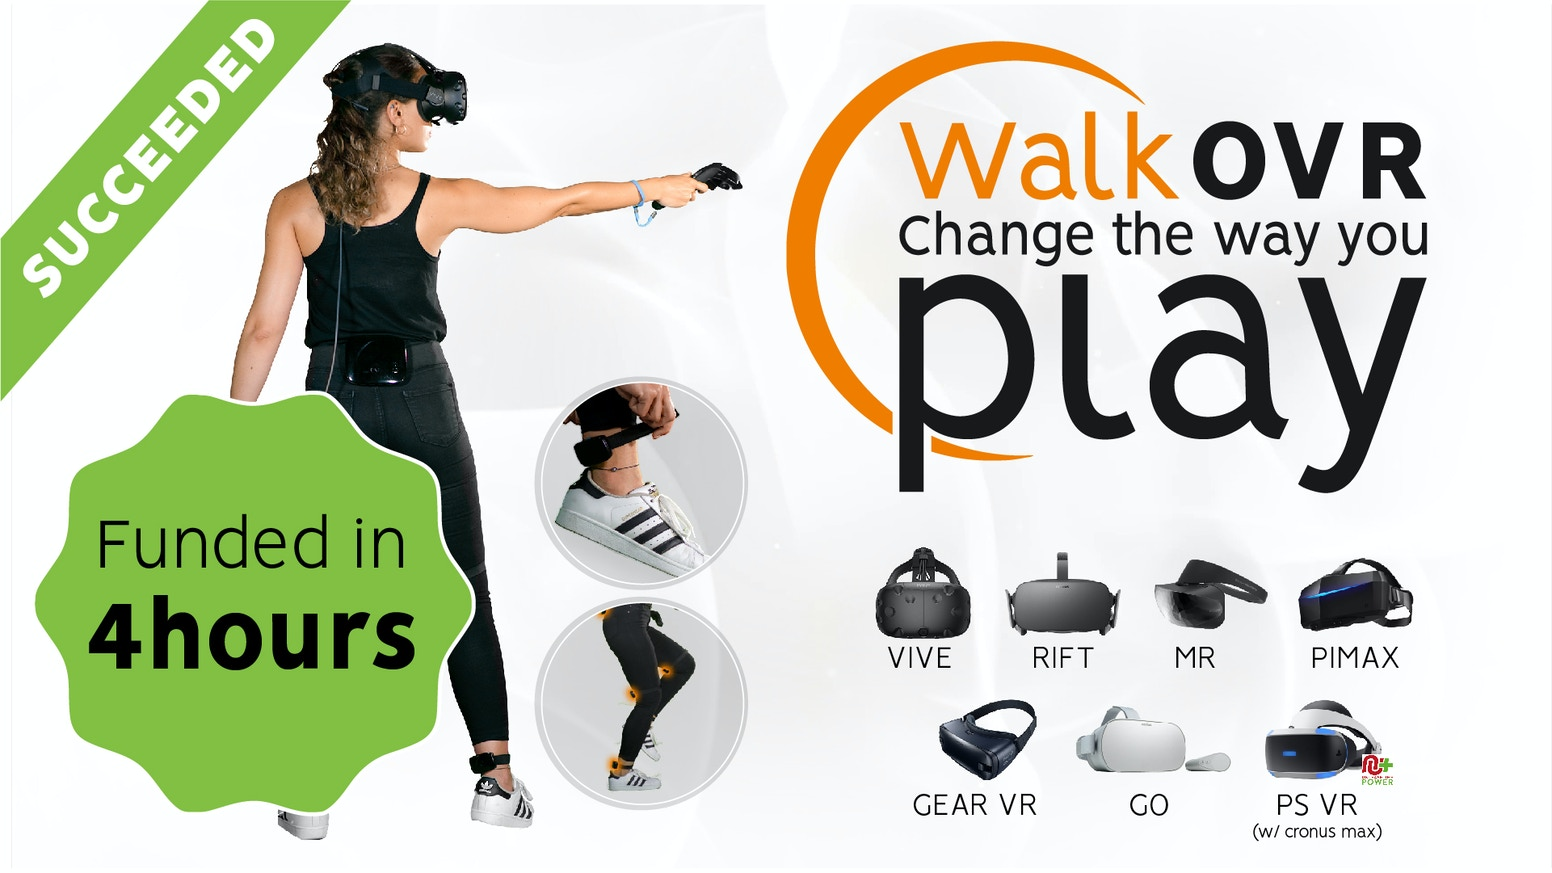 WalkOVR is a Wearable Motion System that Lets VR Users Physically Move in VR Environments and Games.